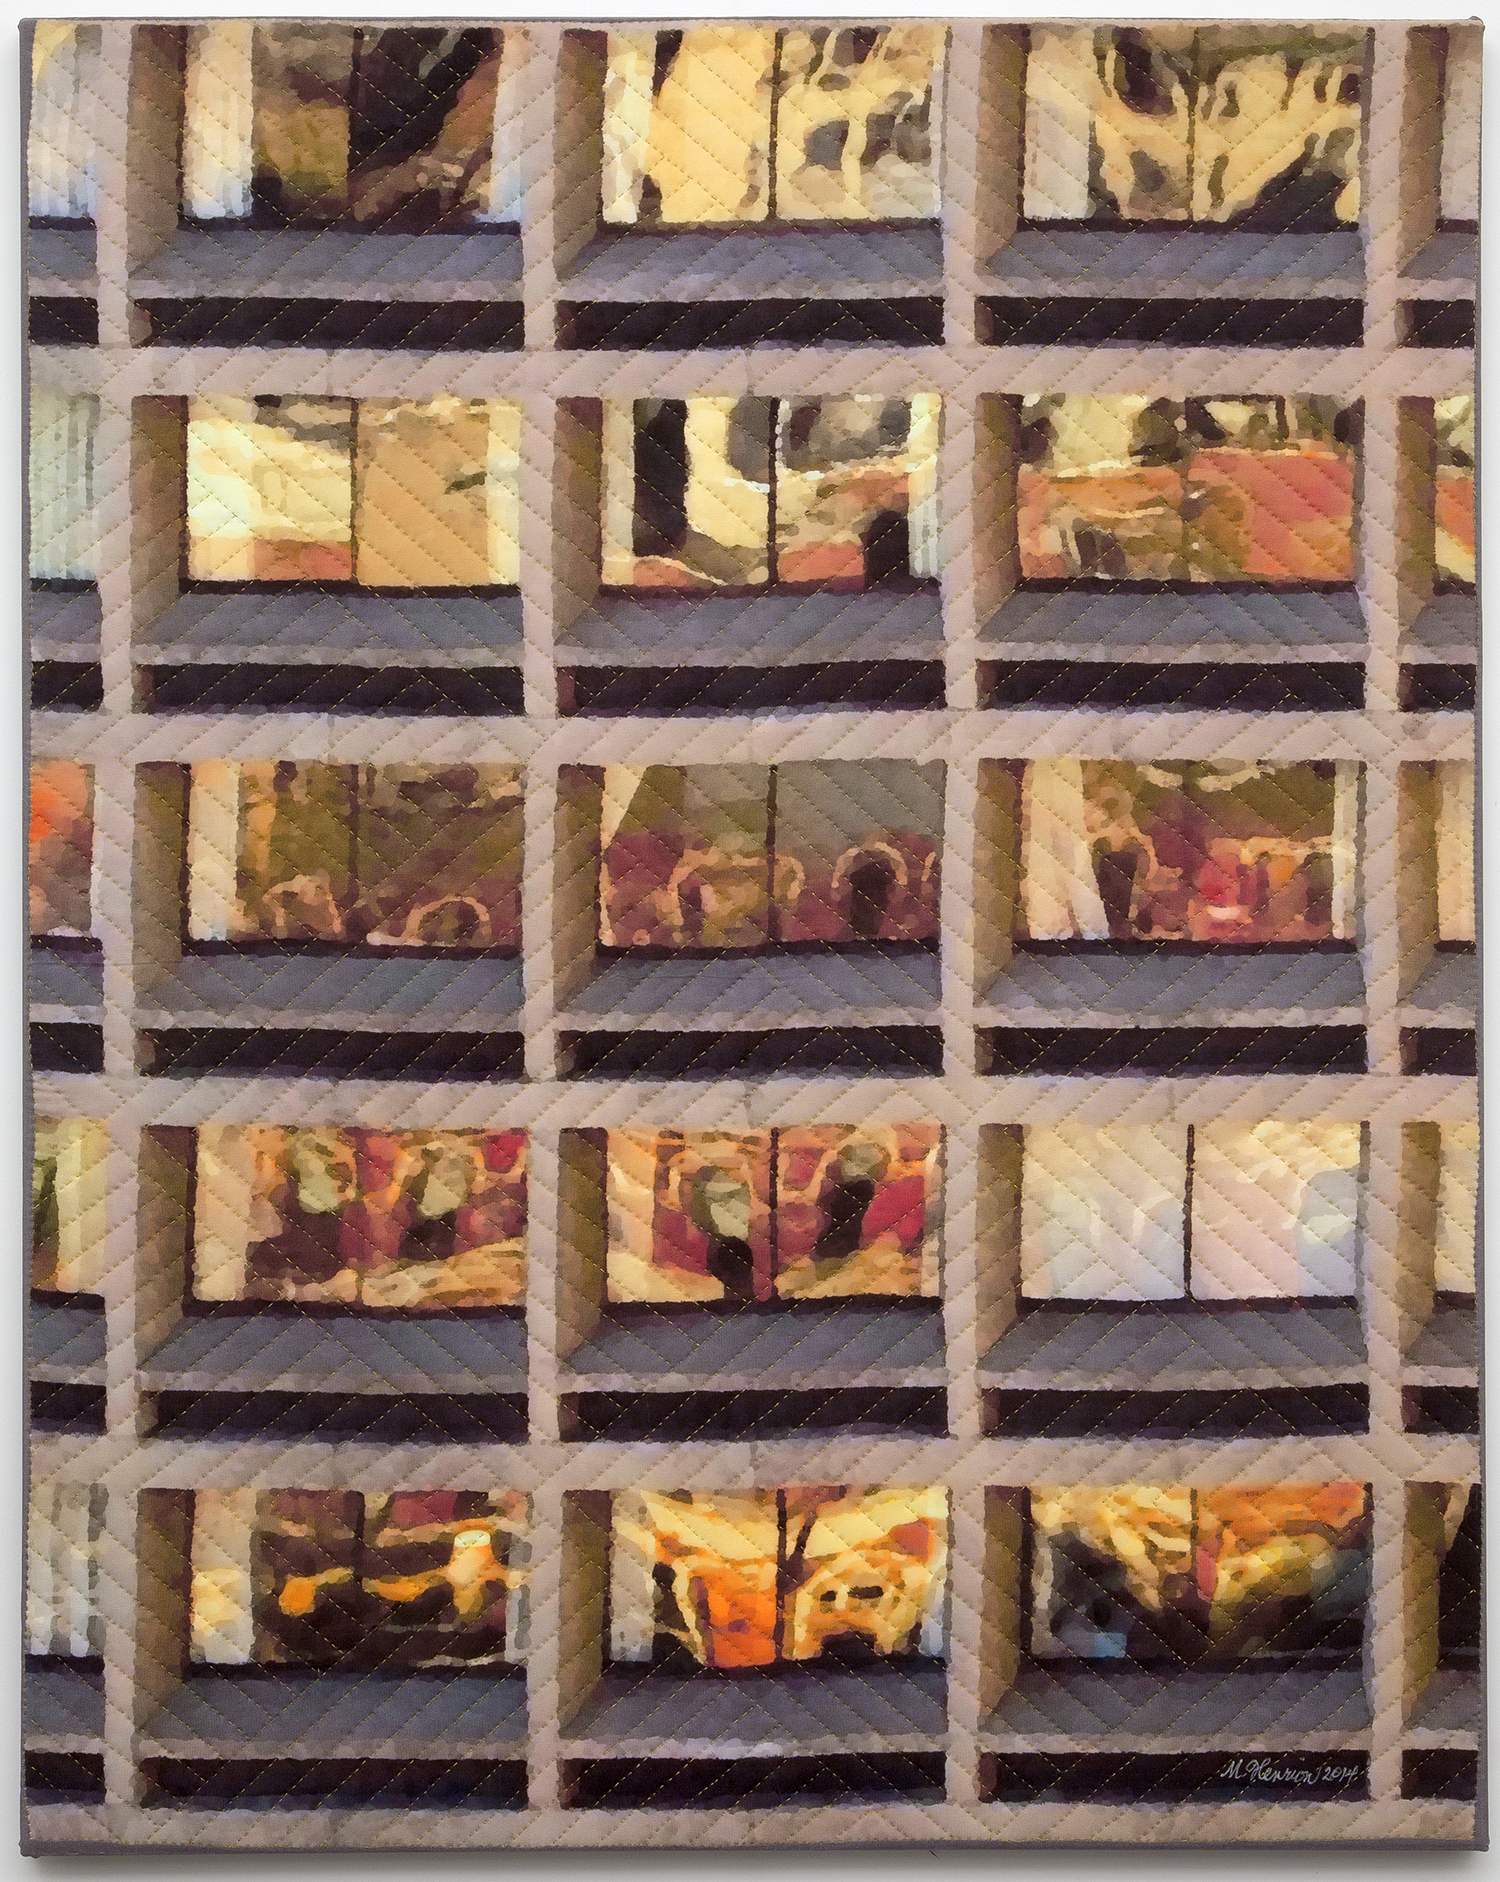 "2000-8. New York Windows 1446, 30""x24""x1"", mixed media on silk, hand quilted, gallery-wrapped stretched canvas"